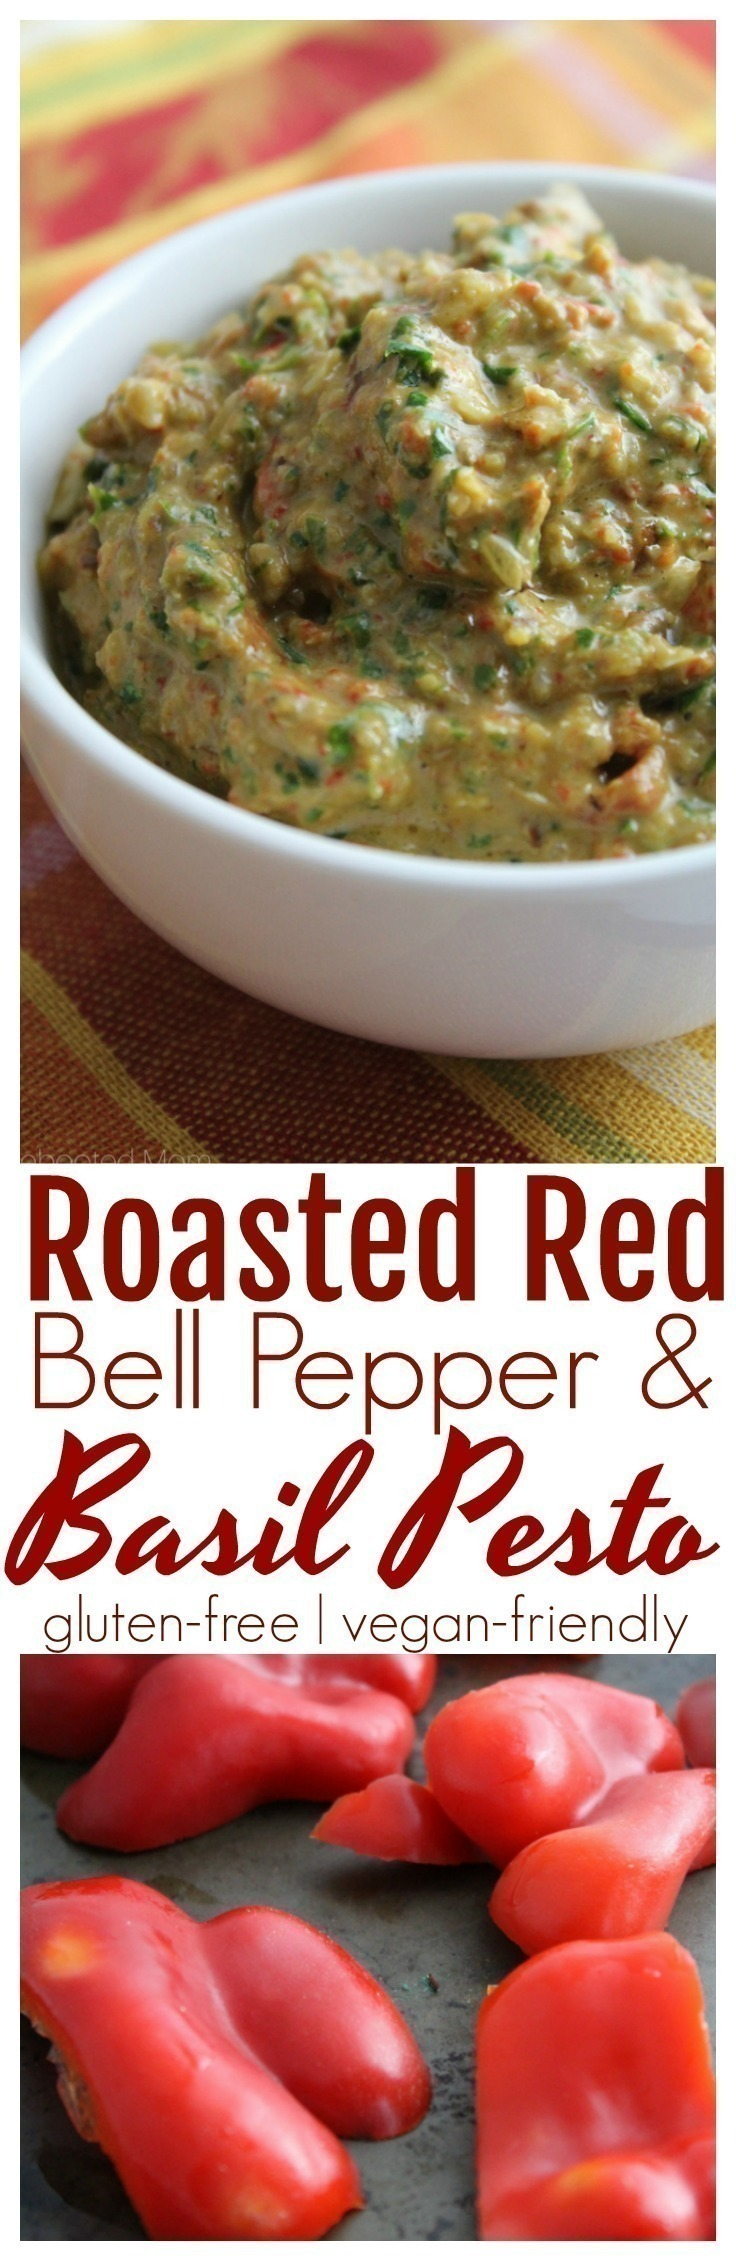 A delicious combination of roasted red bell peppers and fresh basil in a pesto that takes just minutes to make!